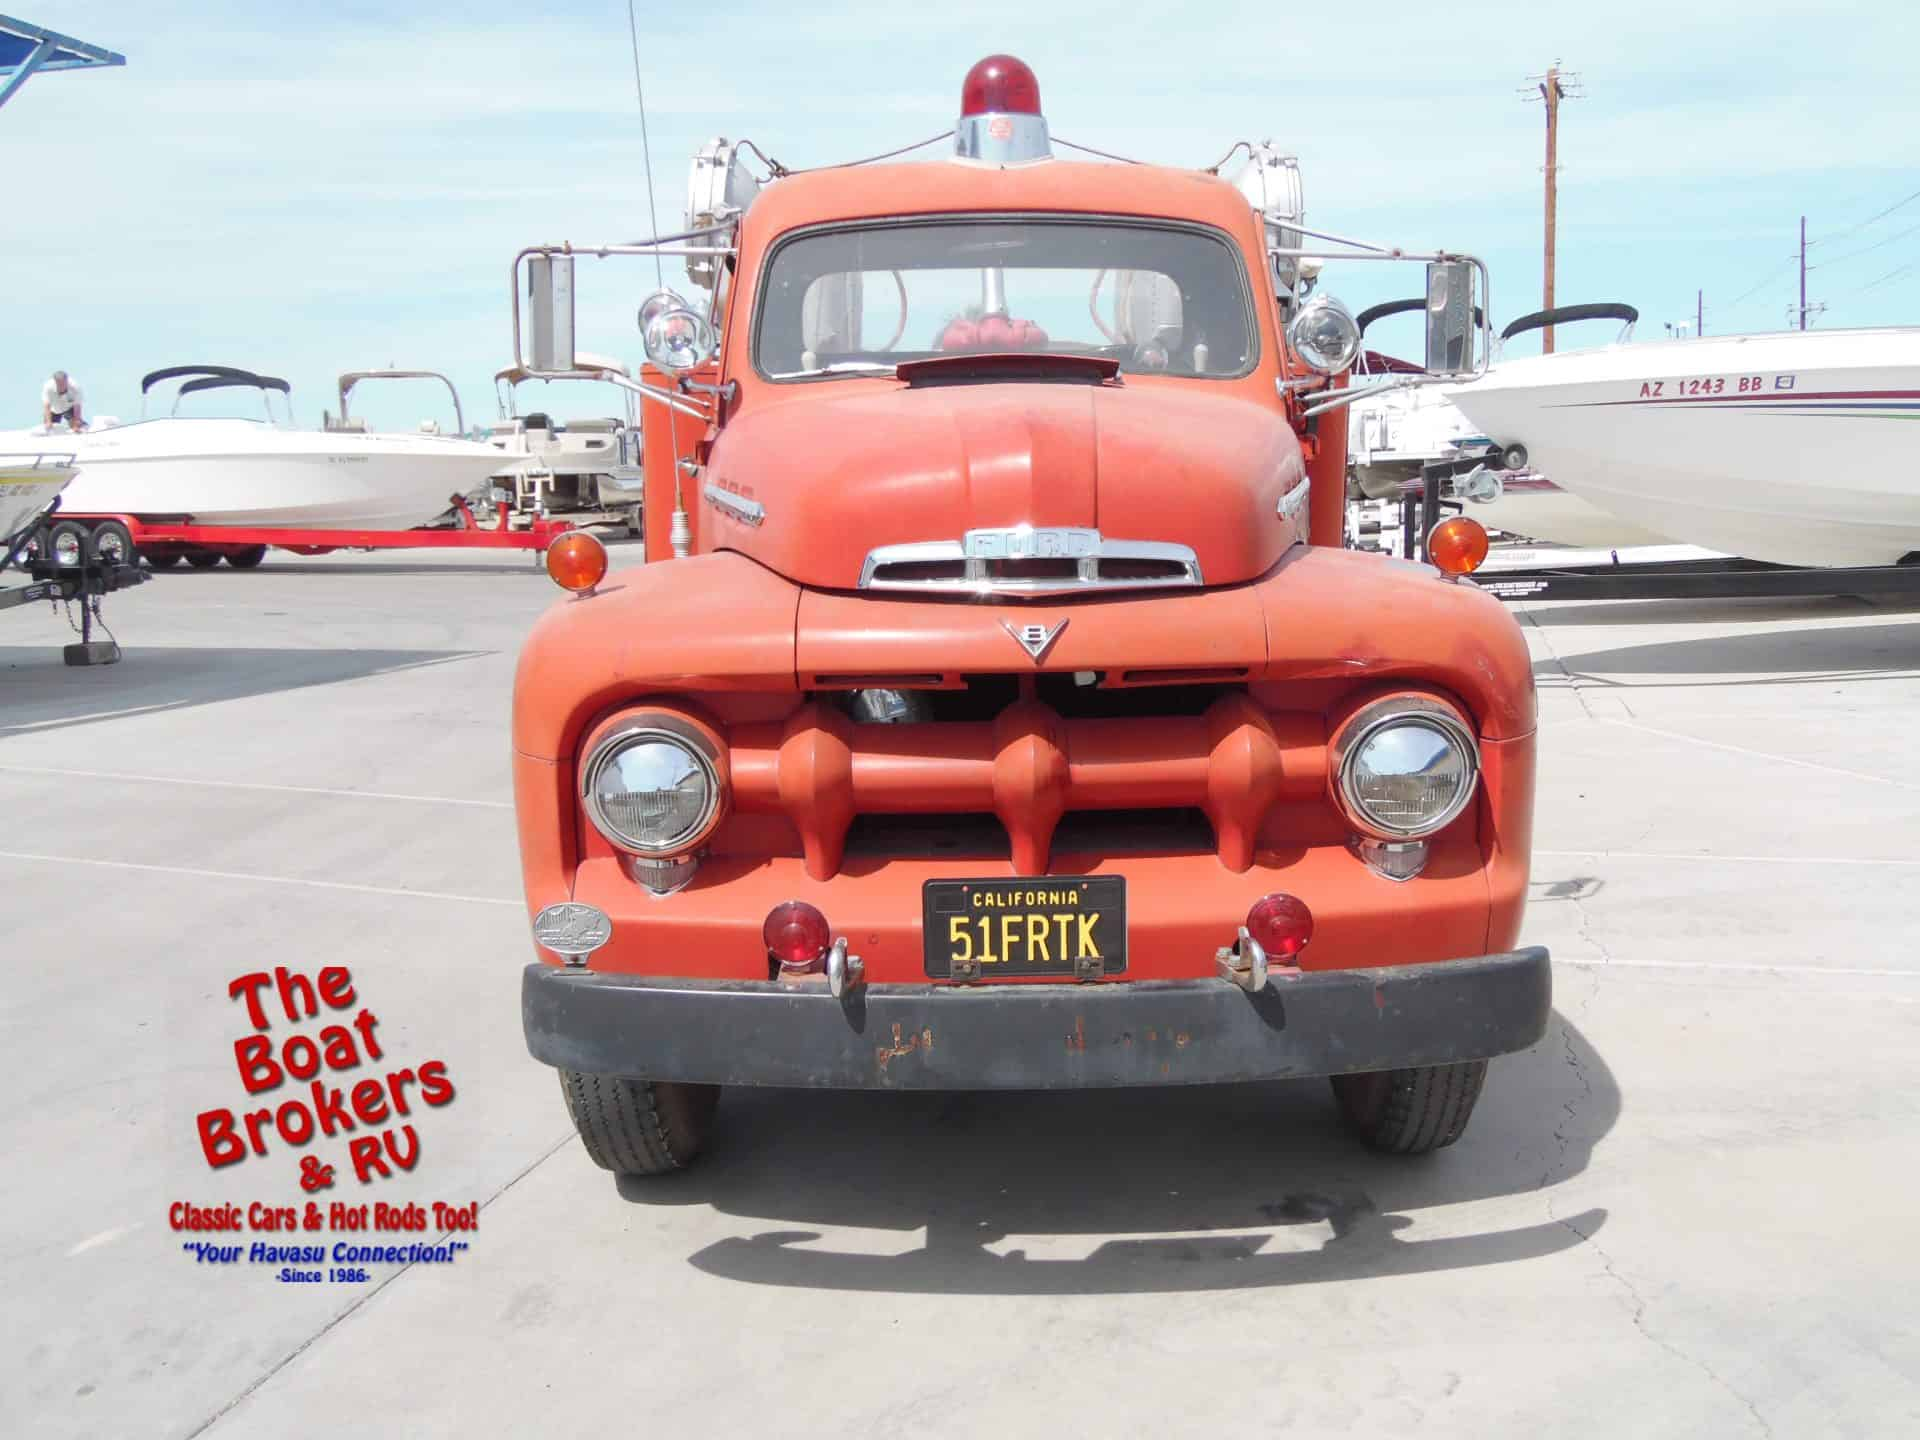 1951 Ford Fire Truck New Used Boats Rv For Sale The Boat 1952 Hot Rod Pics Firetruck